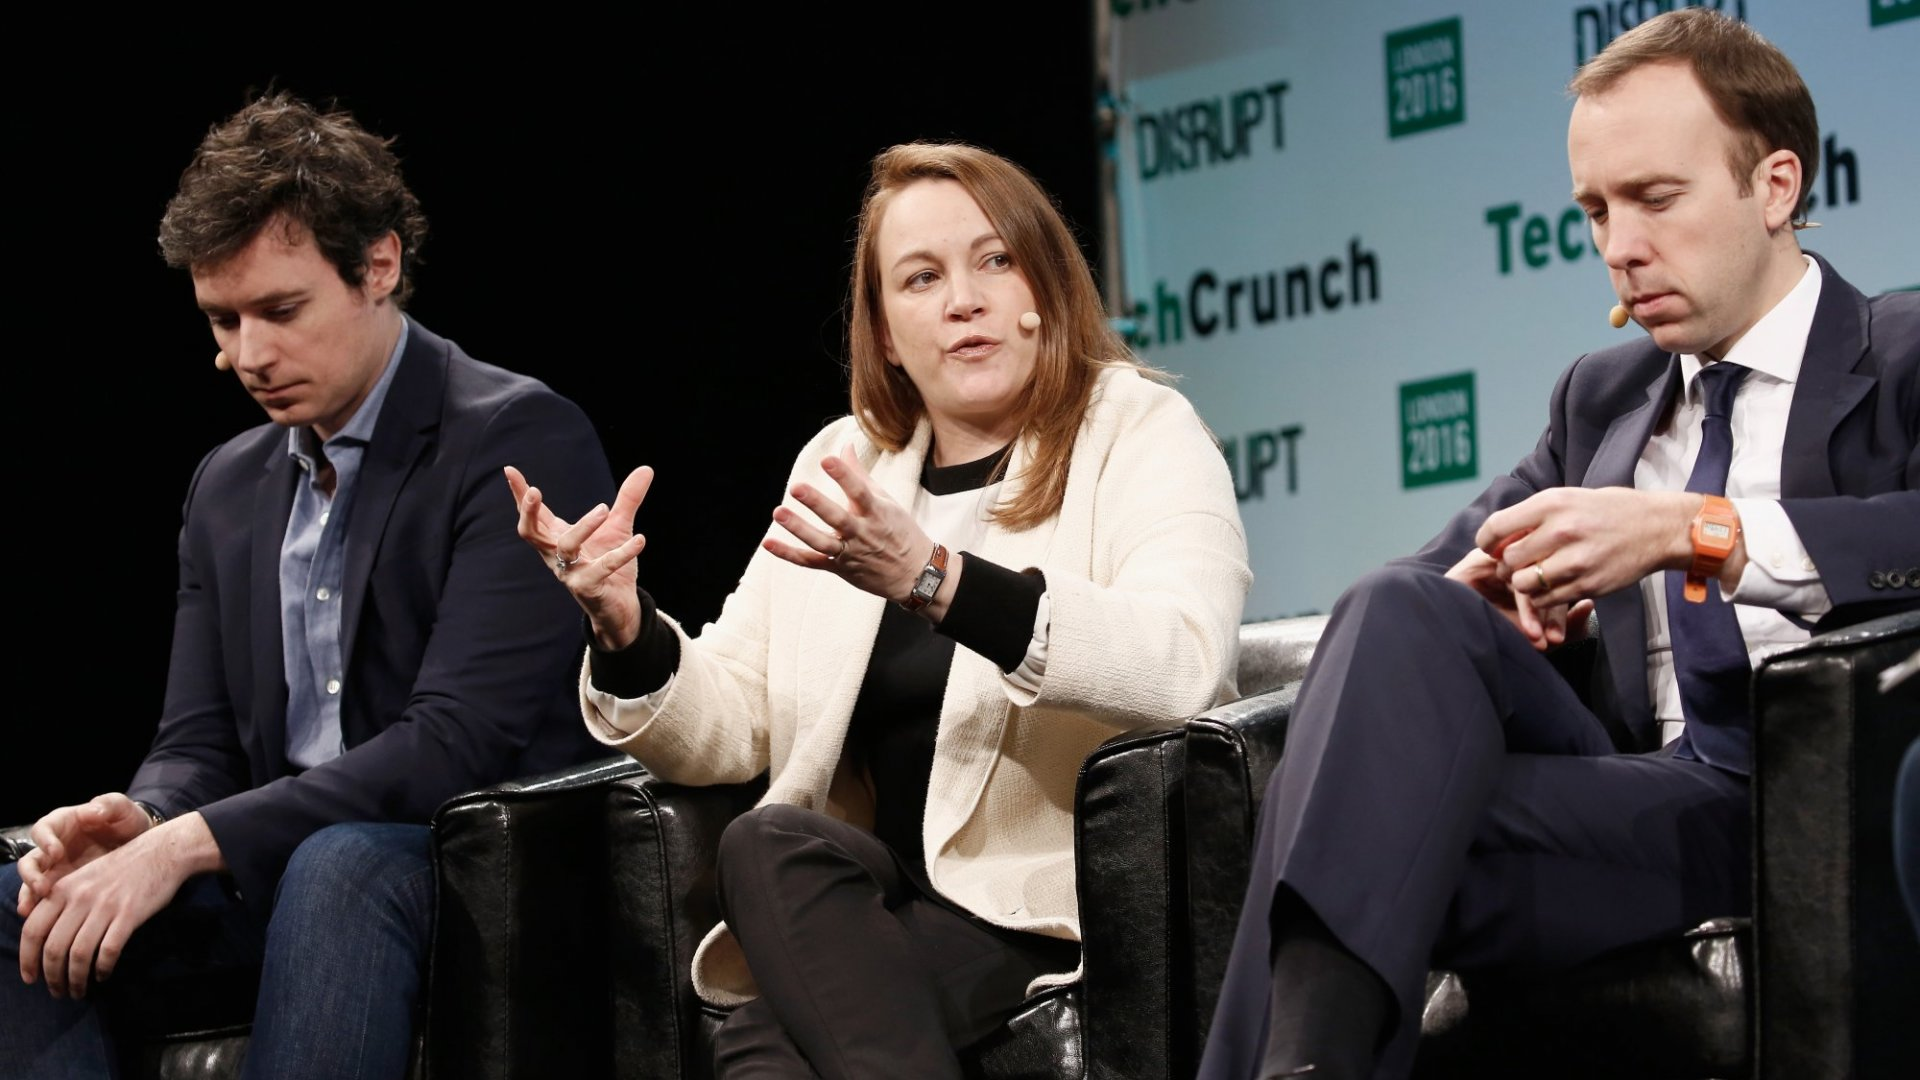 Axelle Lemaire (center), France's digital minister, speaking at a TechCrunch event.